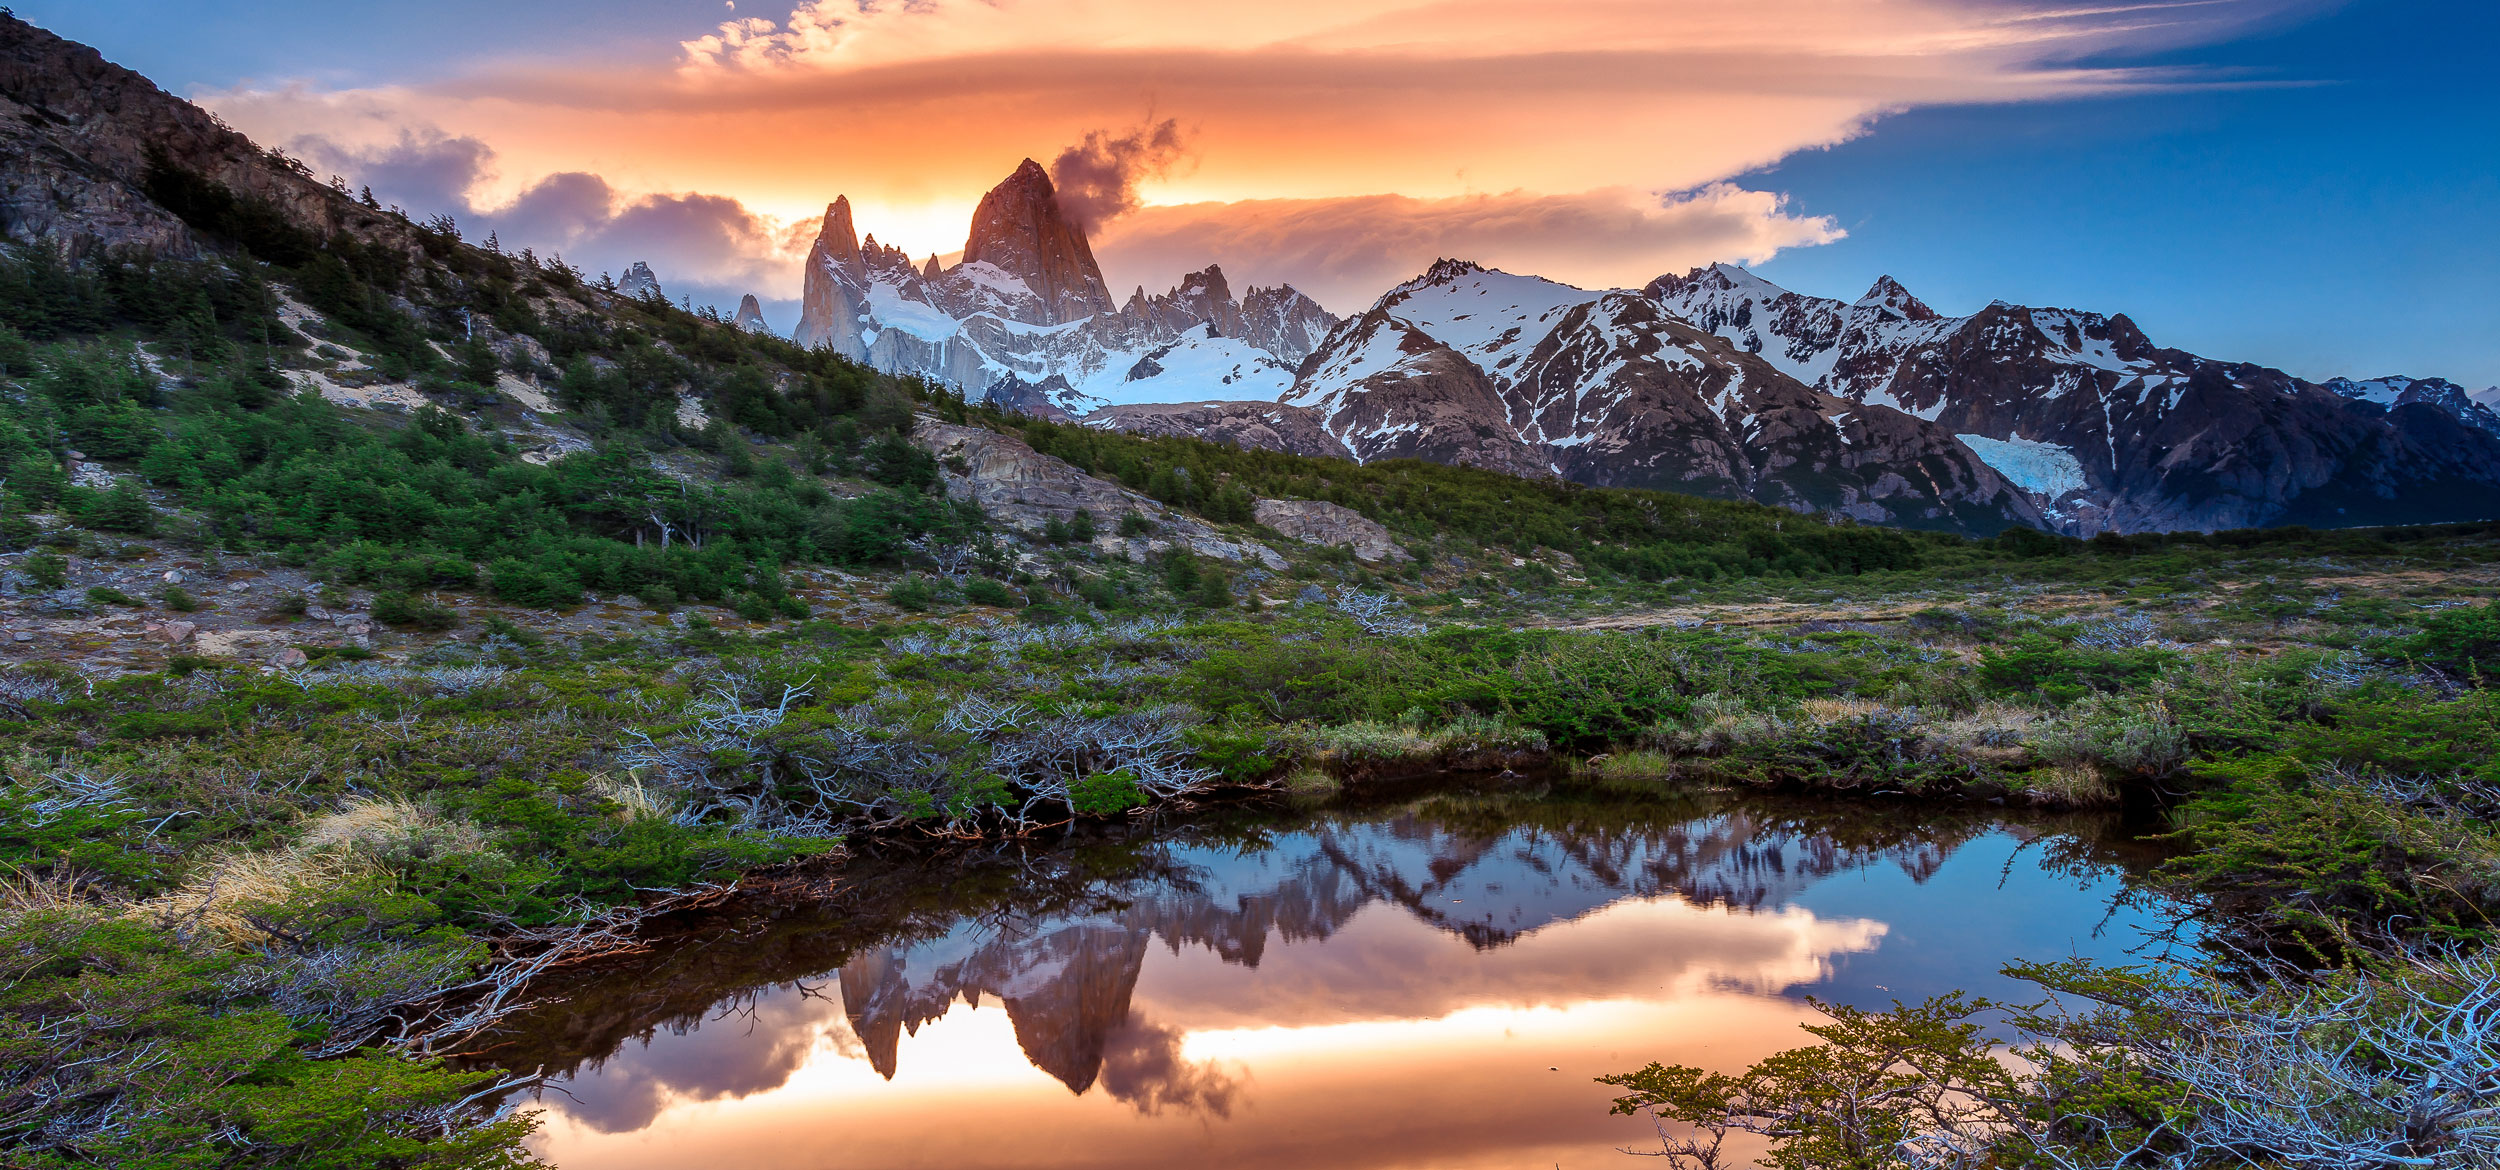 A sunset view of Mt Fitz Roy with a reflection in a grassy pond in Los Glaciares National Park, Argentina.